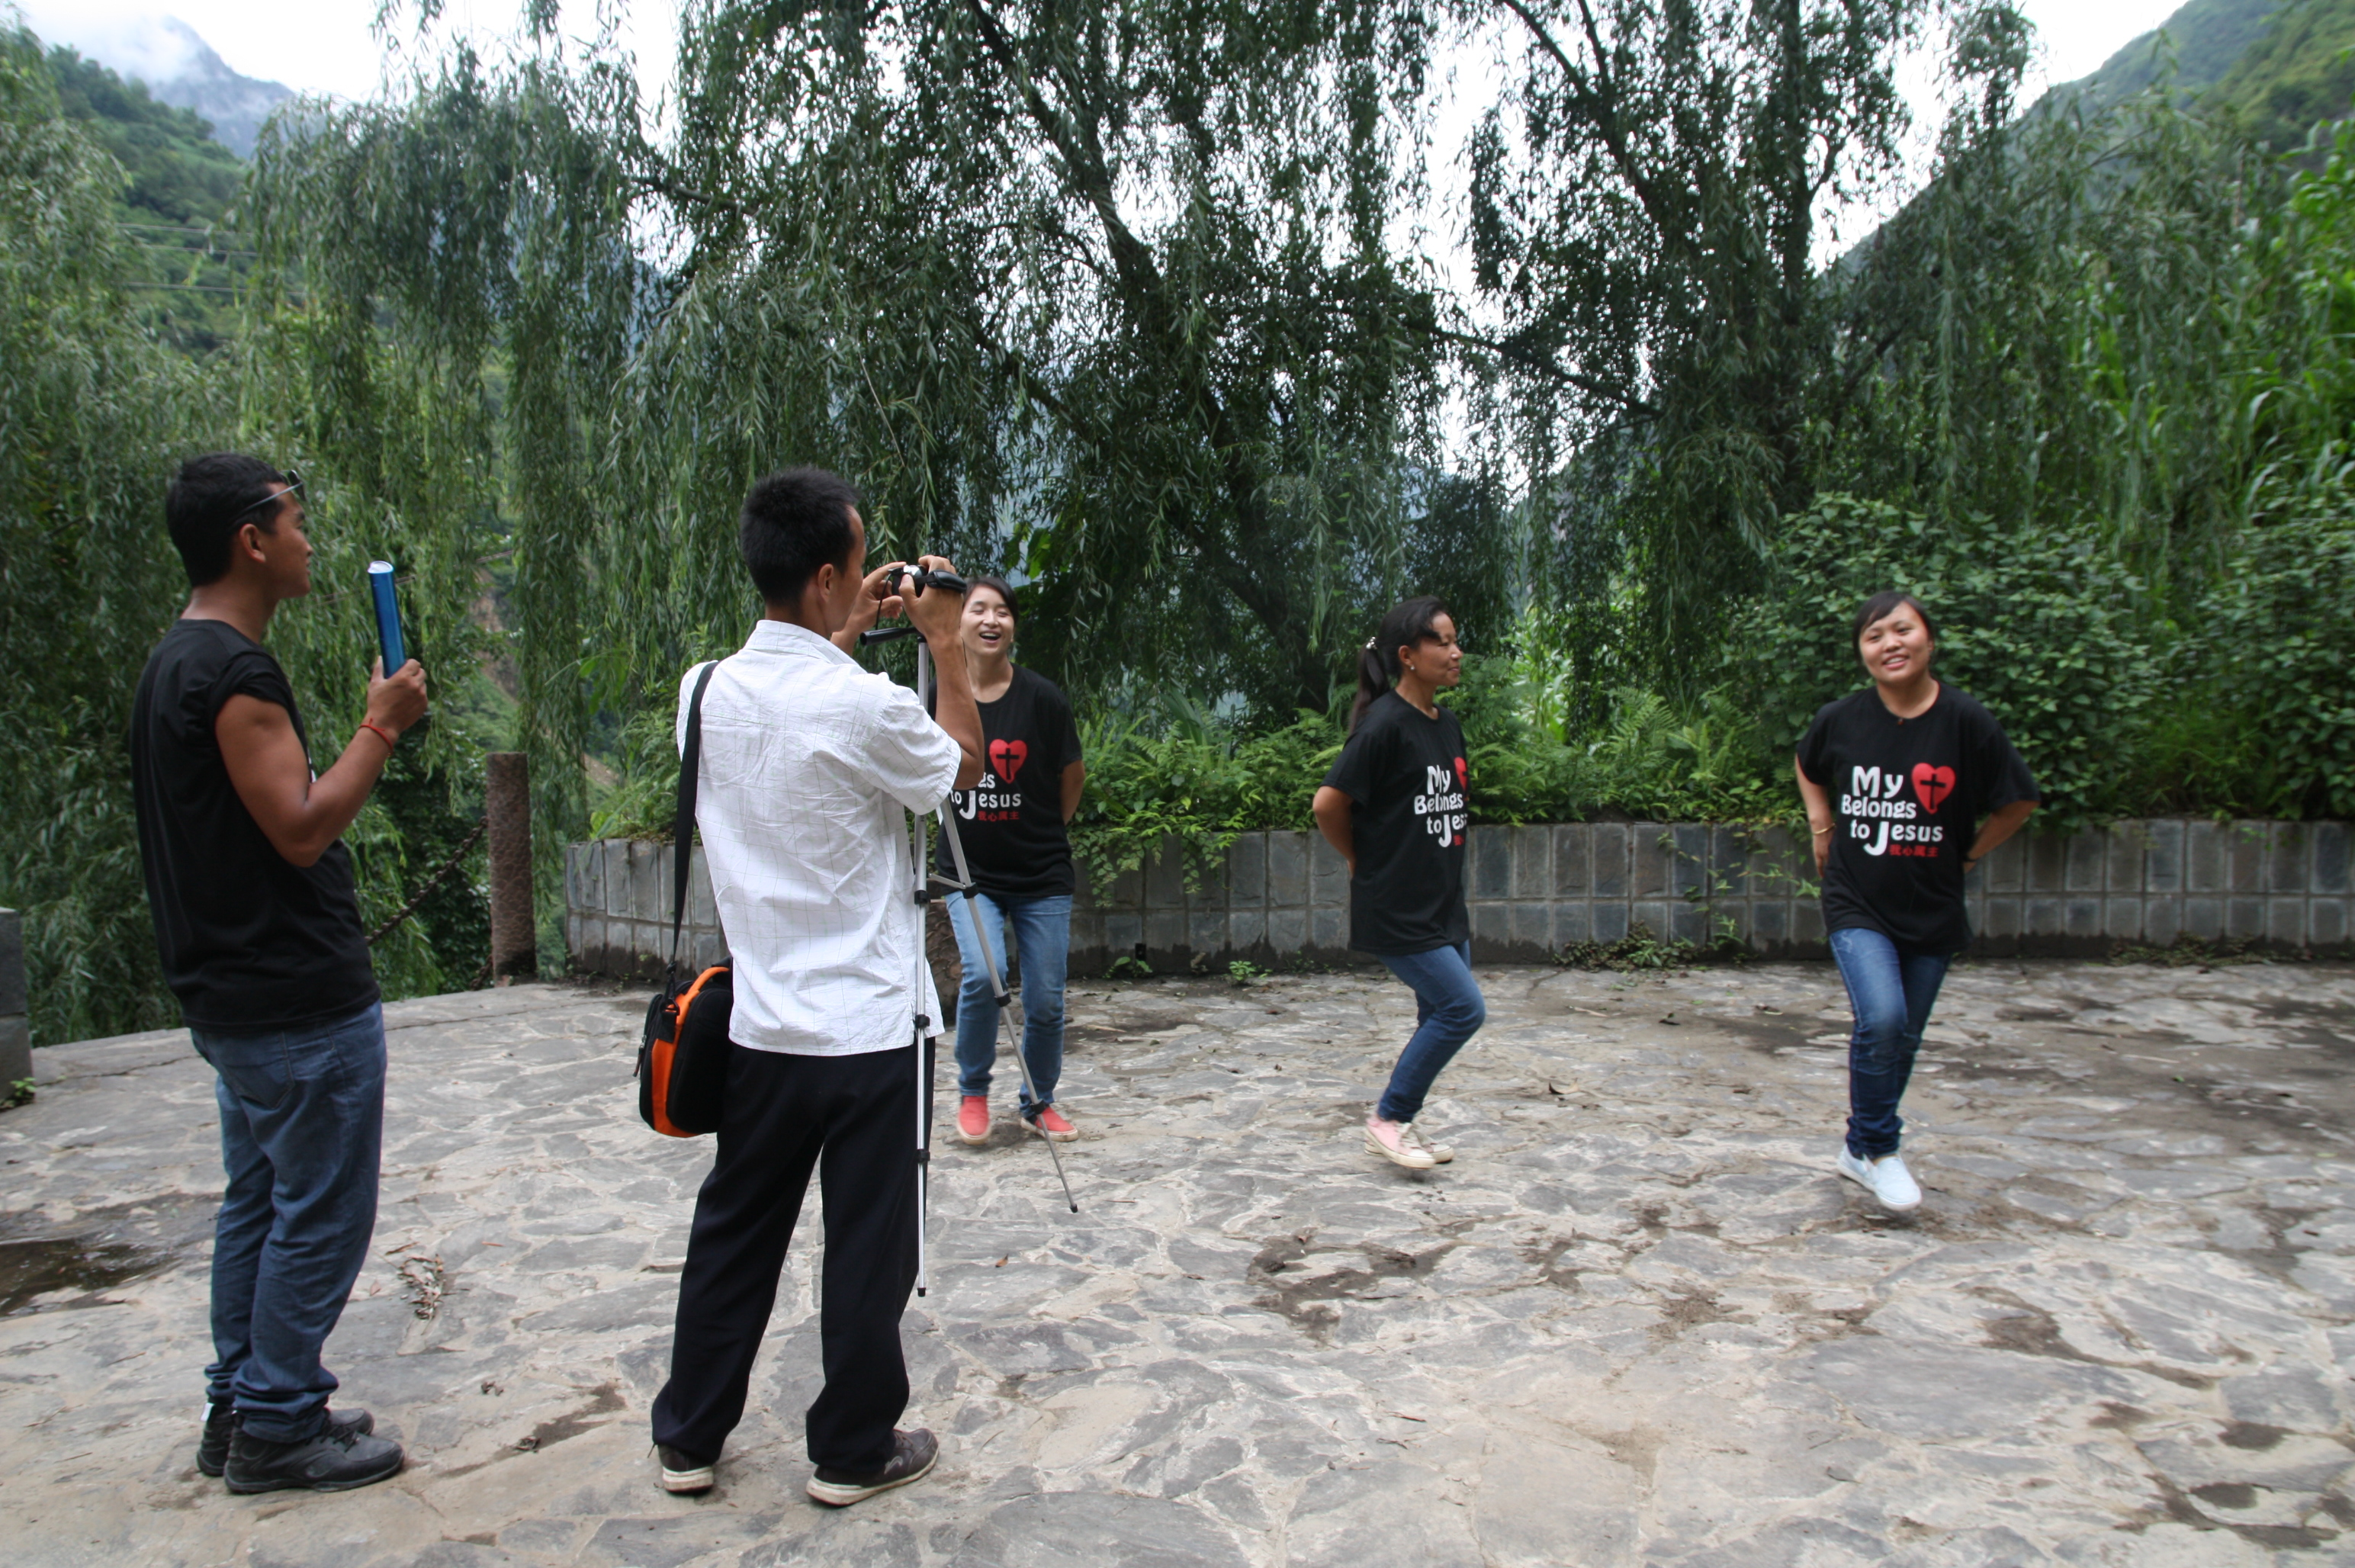 Lisu music group taking videos for their second music DVD, Fugong County, 23 June 2014. (Photo: Ying Diao)